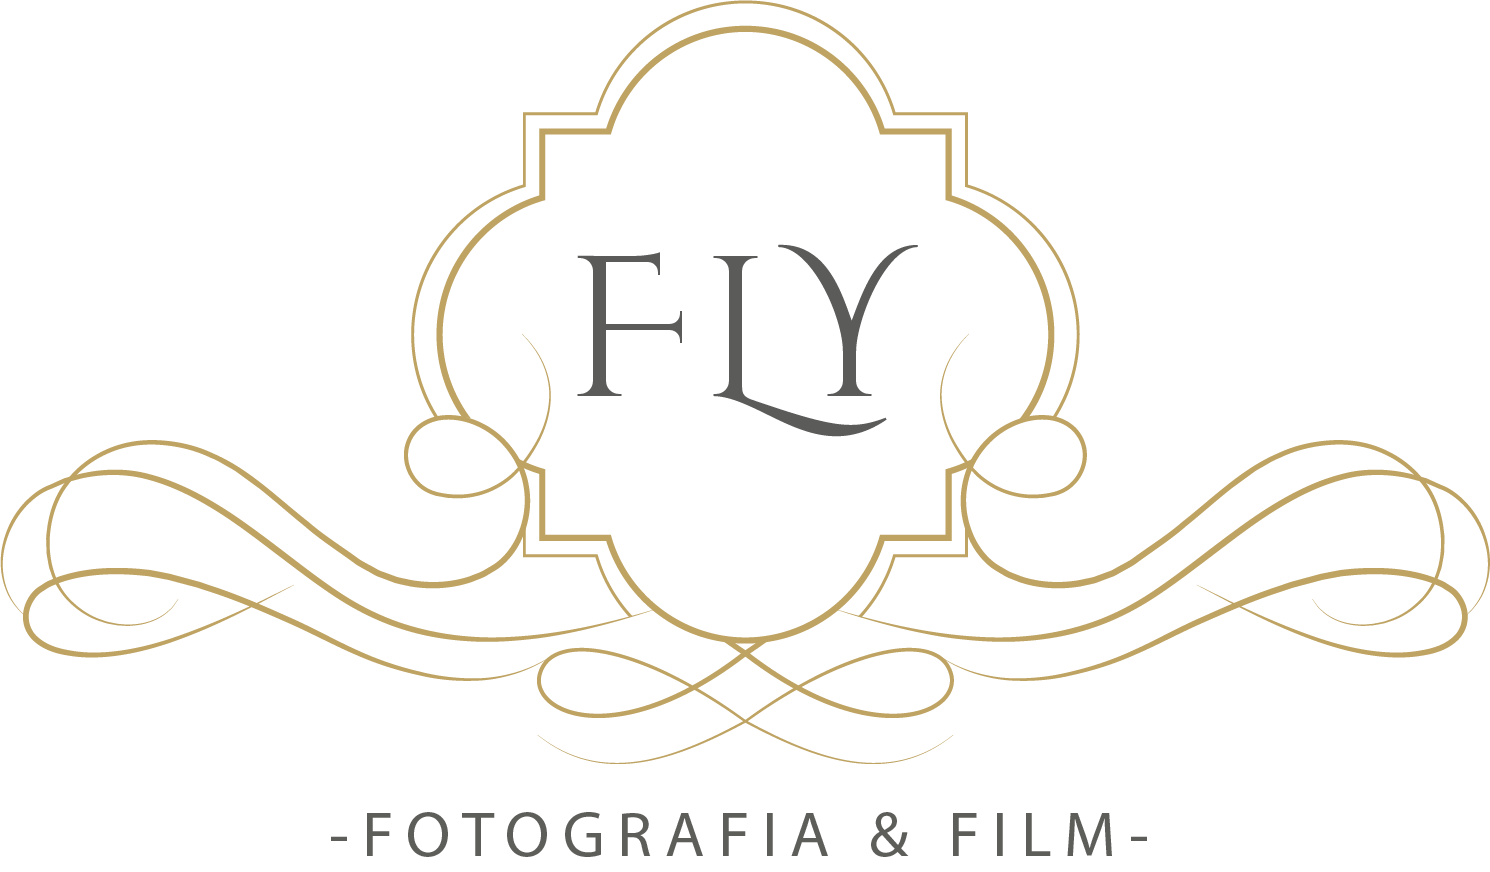 FLY Fotografia & Film